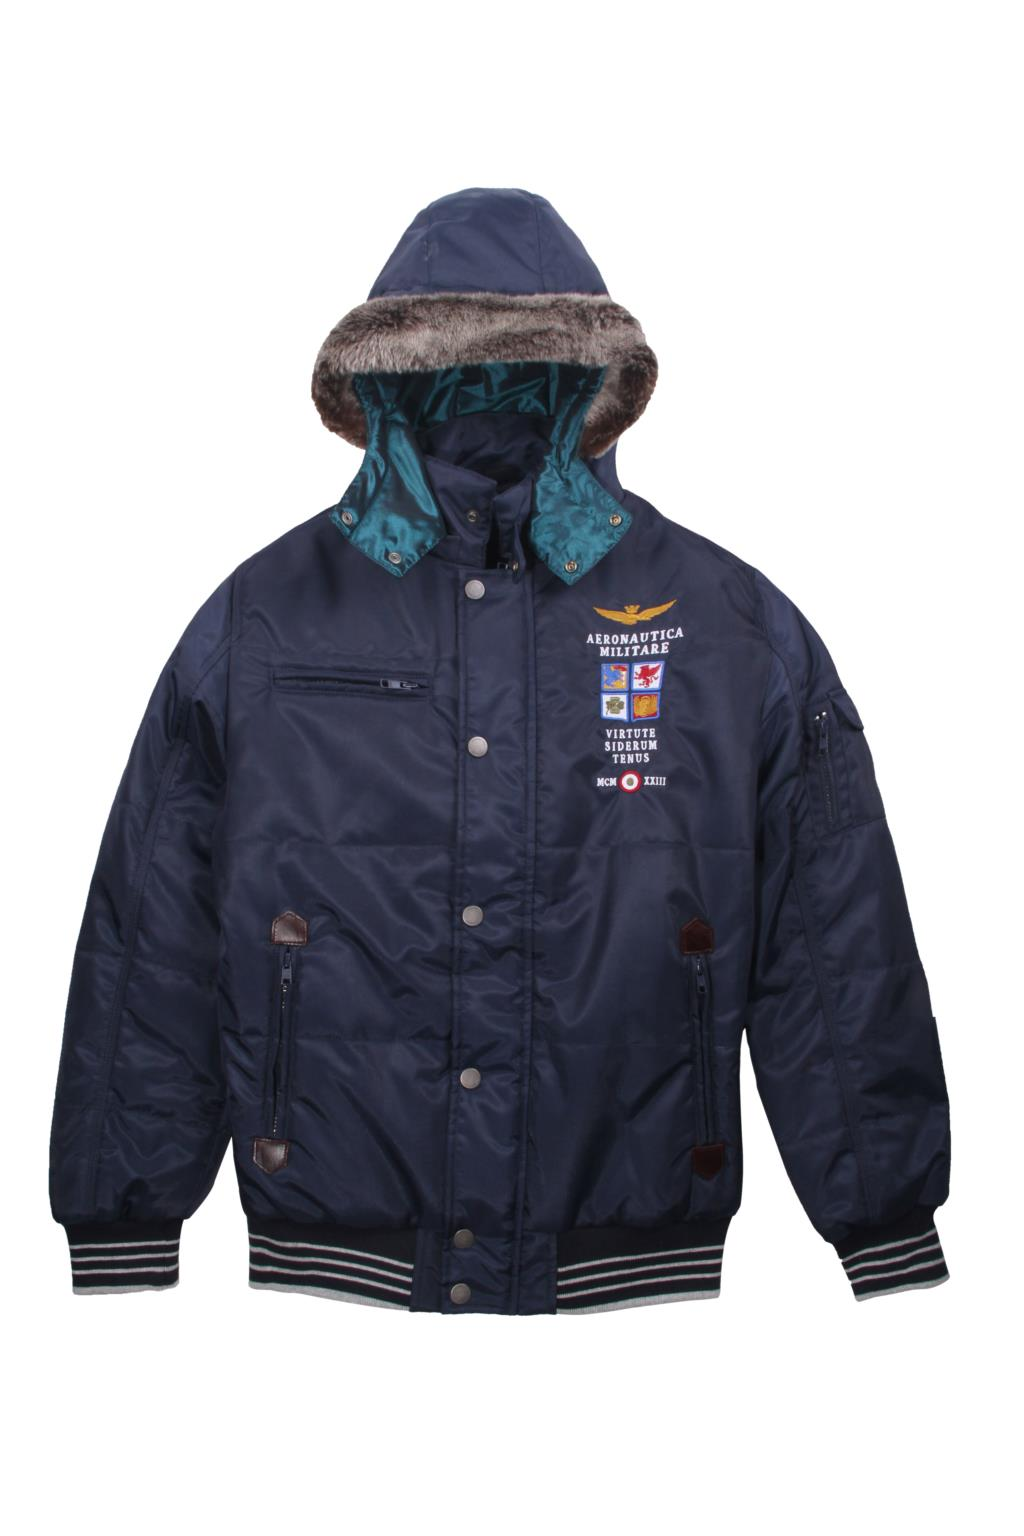 AERONAUTICA MILITARE coat,Italy brand jackets,winter jacket MAN clothes,thermal clothing S,M,L,XL,XXL 5 colors Free Shipping 2